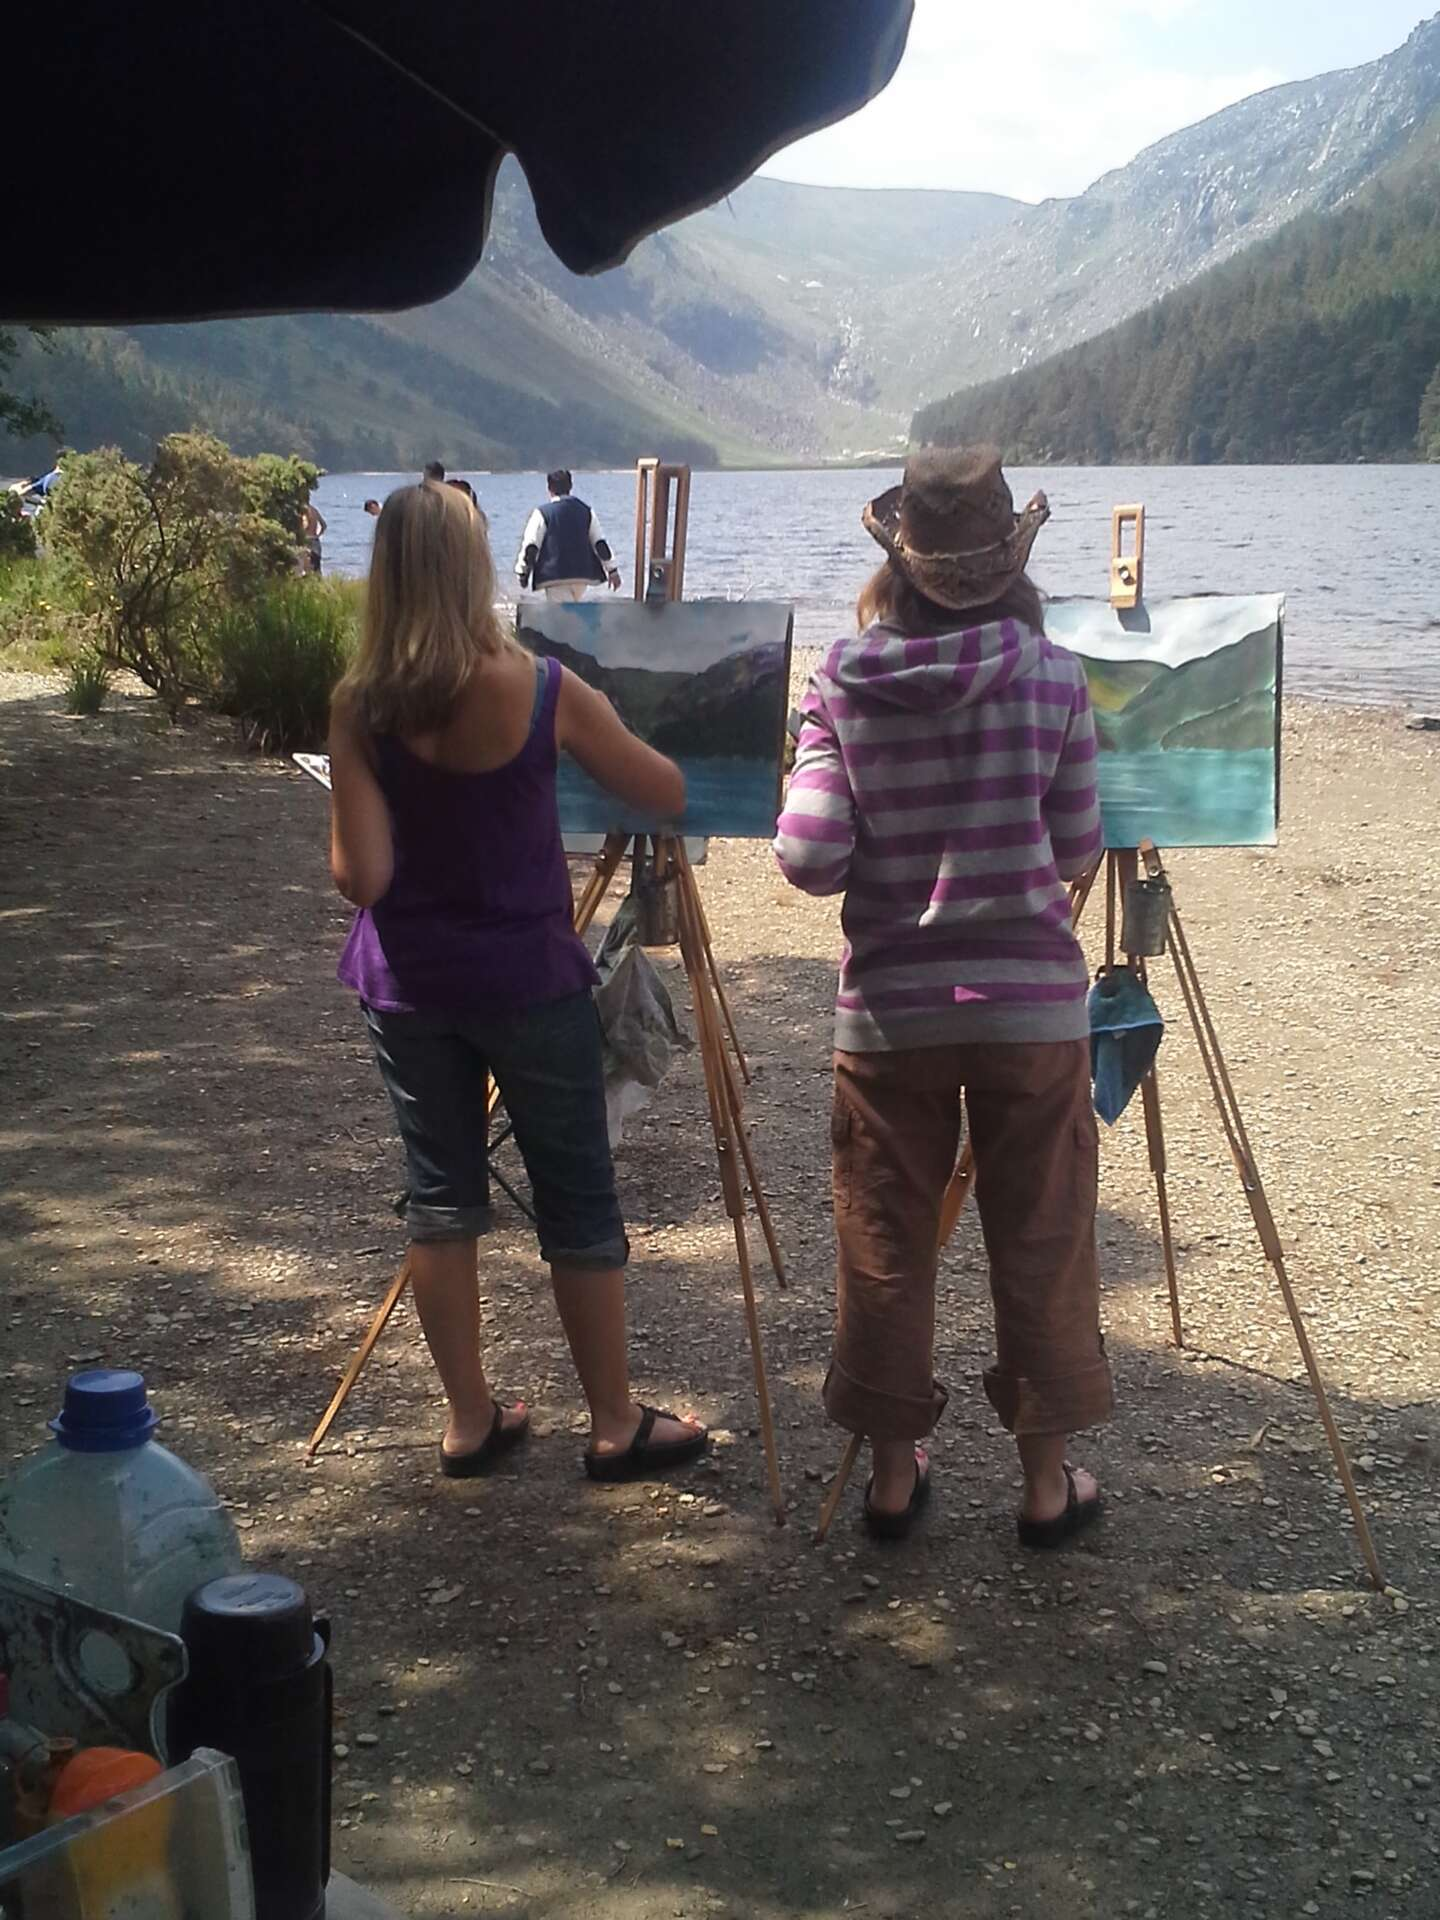 Outdoor Painting Workshop #3, painting on the shores of the Upper Lake.Outdoor Painting Workshop #3, on the shores of the Upper Lake.